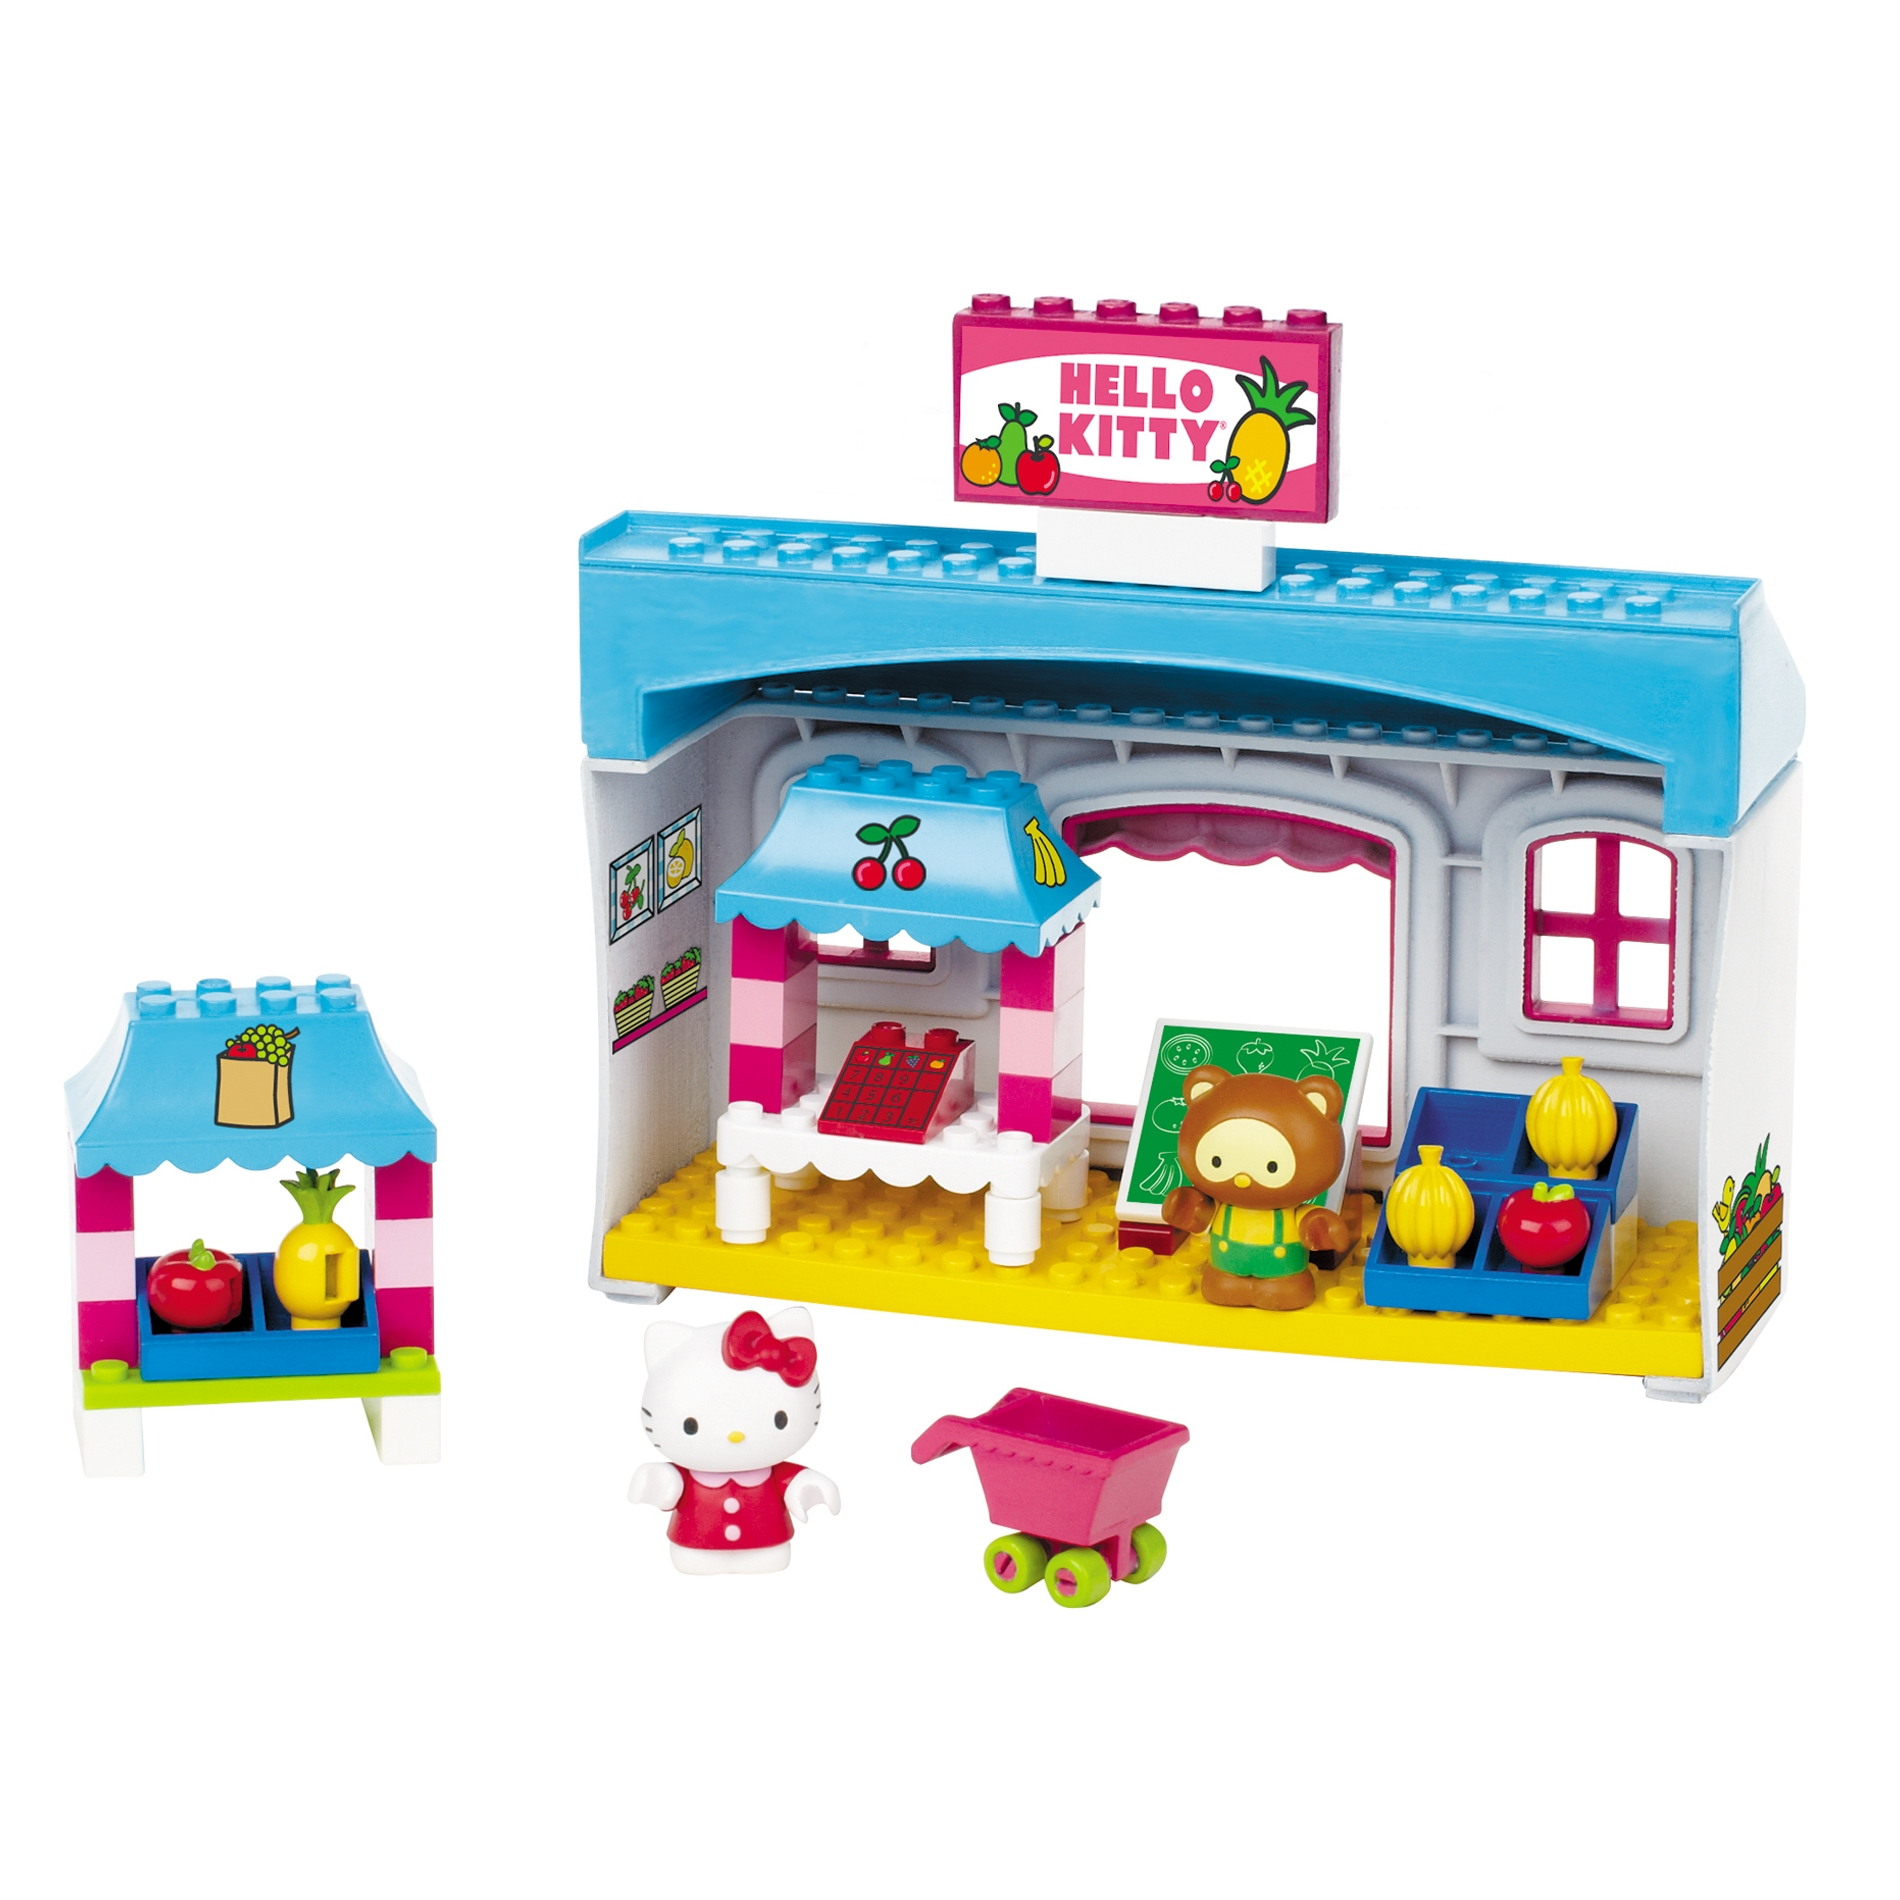 Mega Bloks Hello Kitty Fruit Market Playset